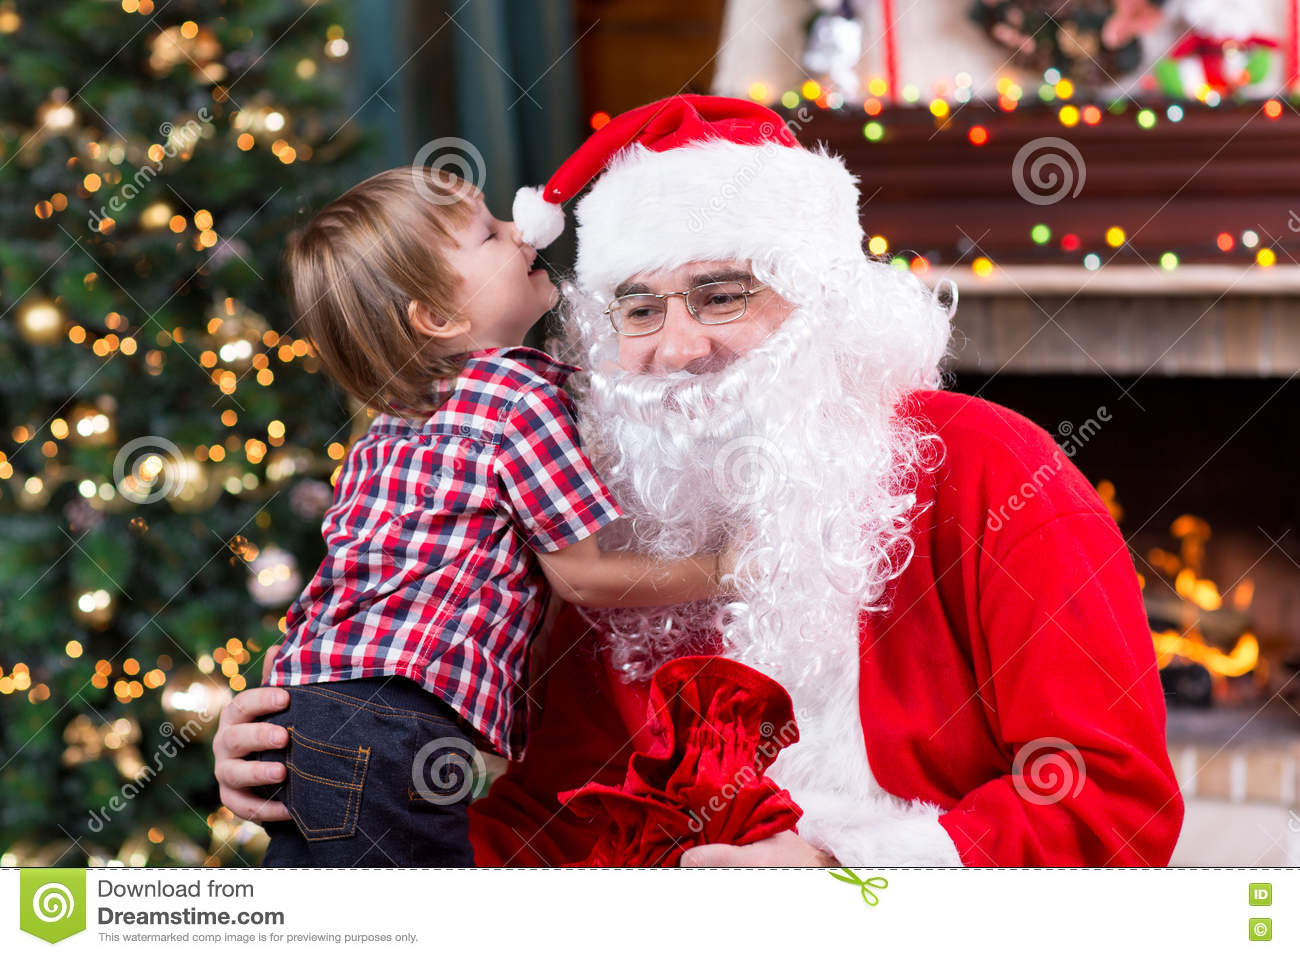 Download Santa Claus And Child With Presents At Fireplace. Kid And Father In Santa Costume  sc 1 st  Dreamstime.com & Santa Claus And Child With Presents At Fireplace. Kid And Father In ...